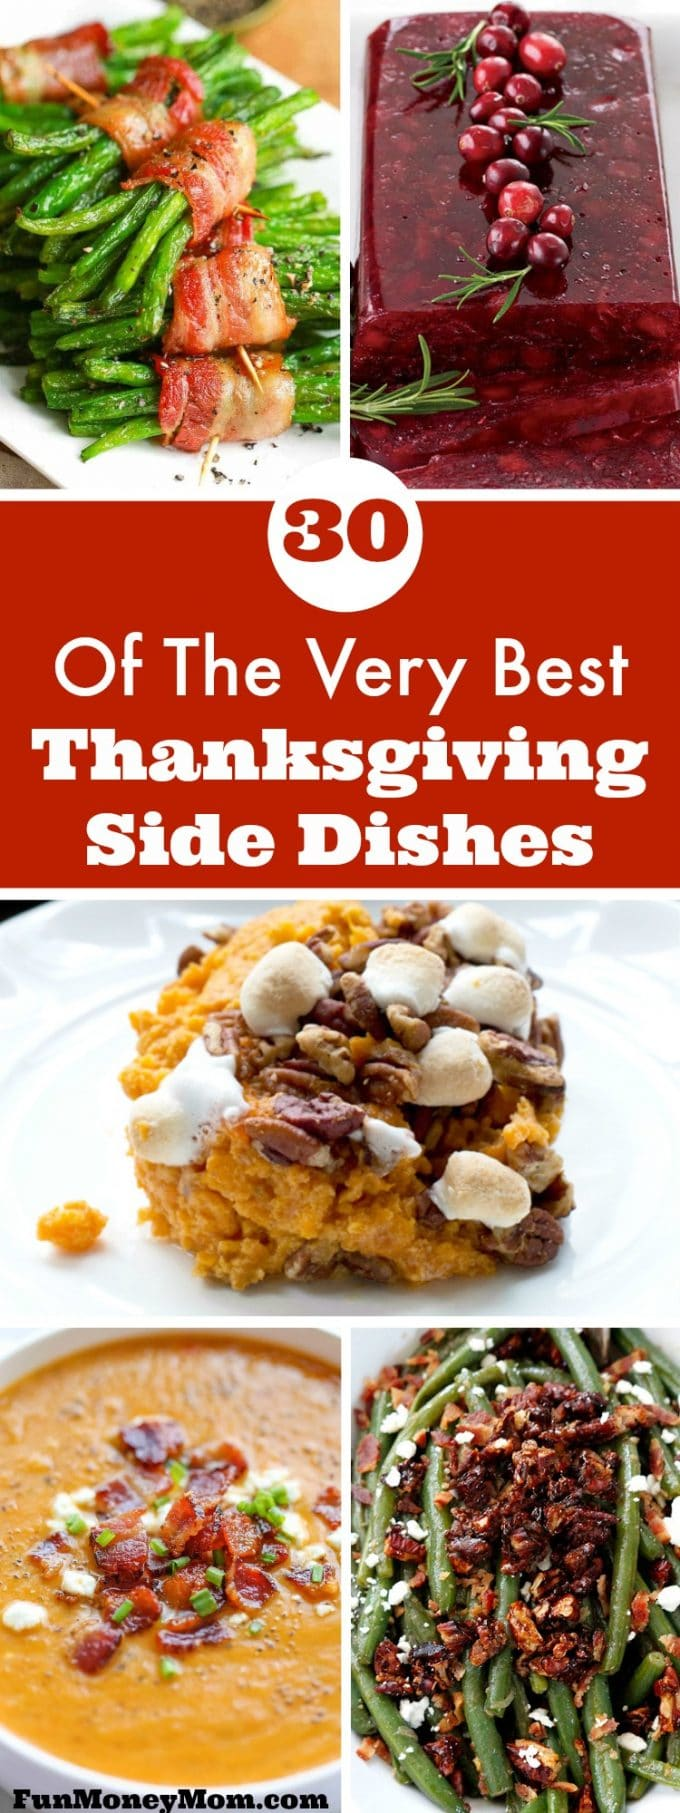 Sides For Dinner: The Best Thanksgiving Side Dishes For Your Holiday Celebration